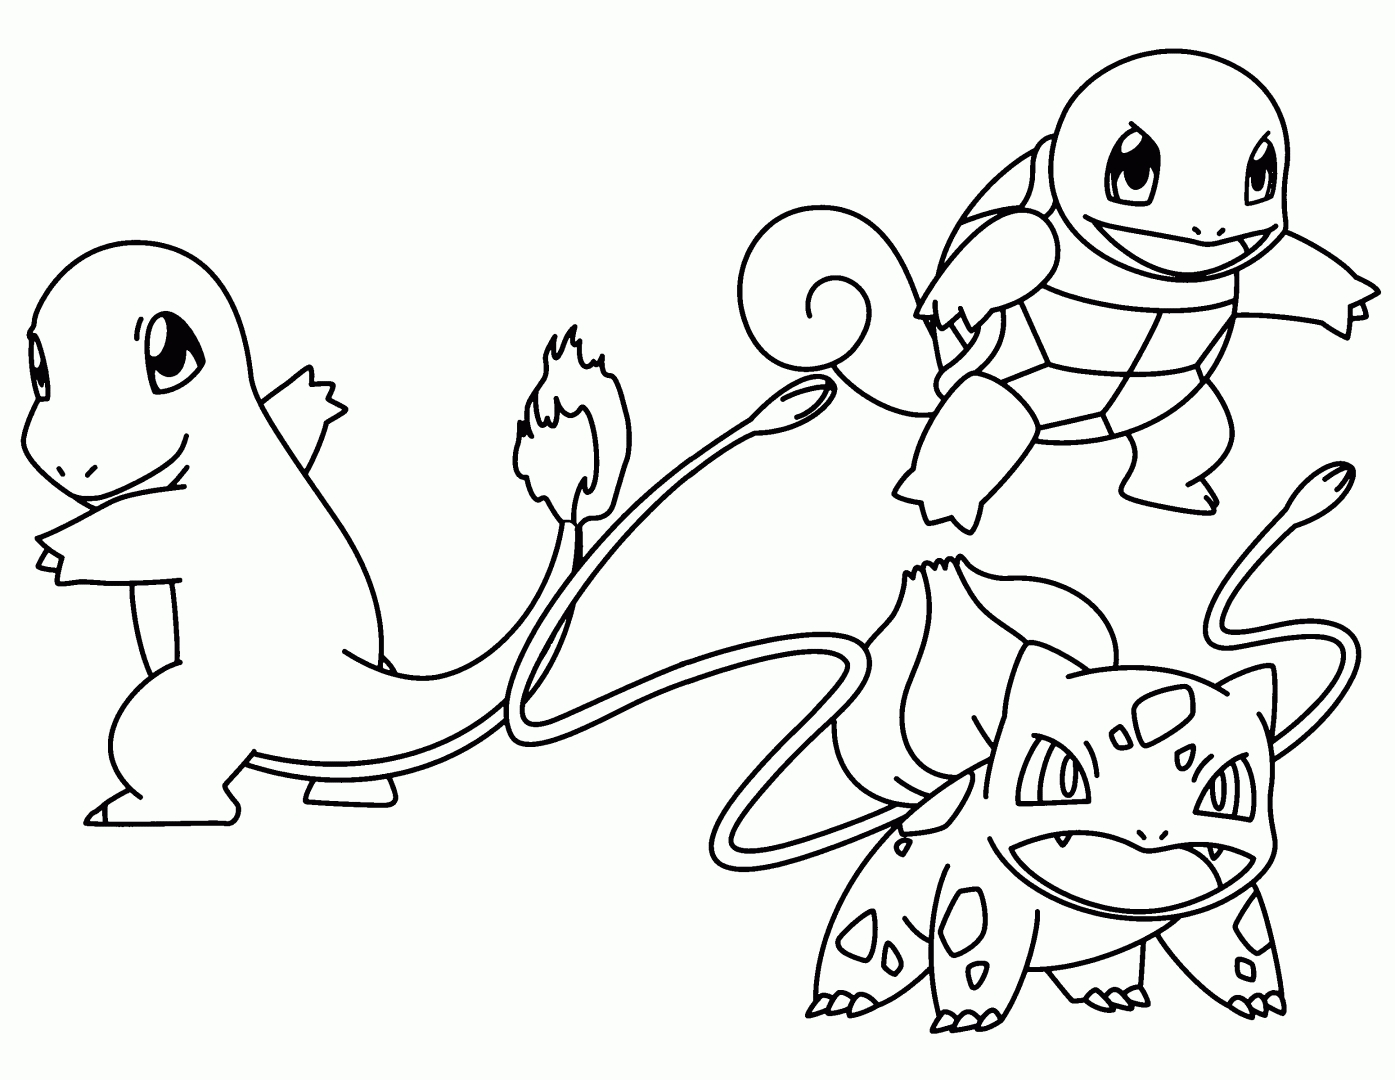 1395x1080 Best Of Pokemon Coloring Pages Charmander Design Printable